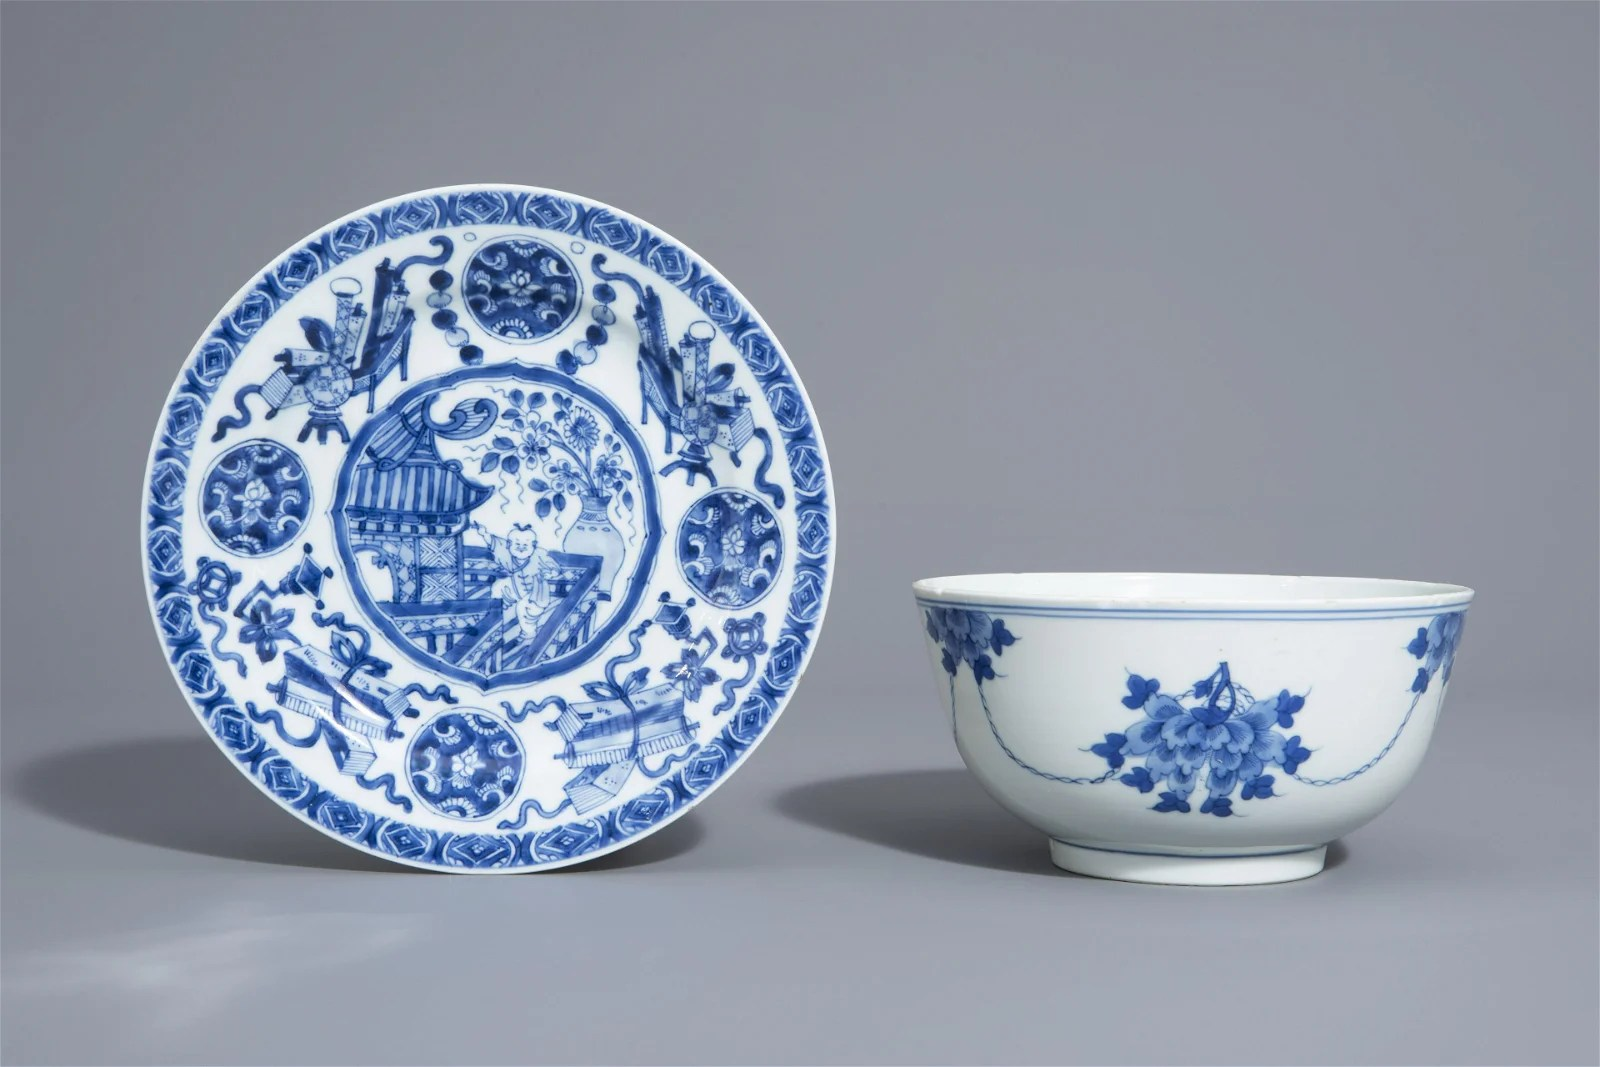 A Chinese blue and white dish and a bowl with different